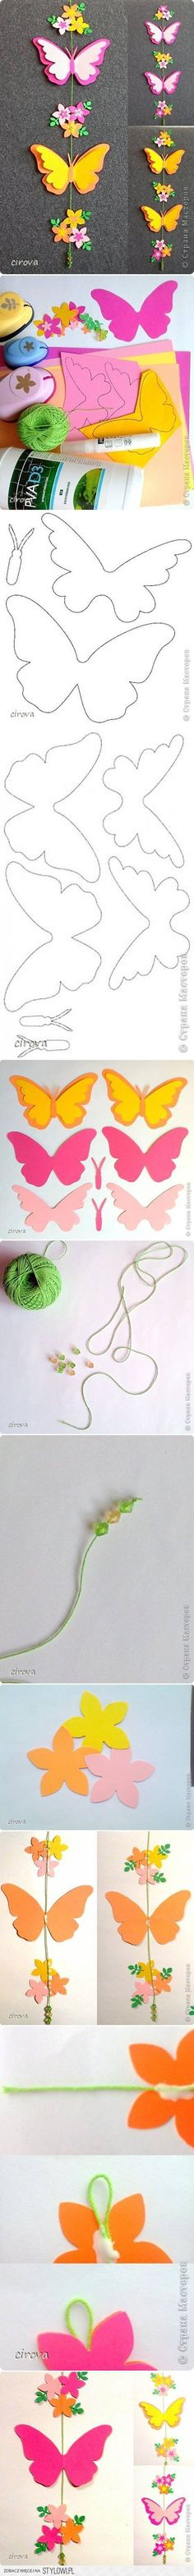 DIY Paper Butterfly Mobile DIY Projects | UsefulDIY.com na Stylowi.pl